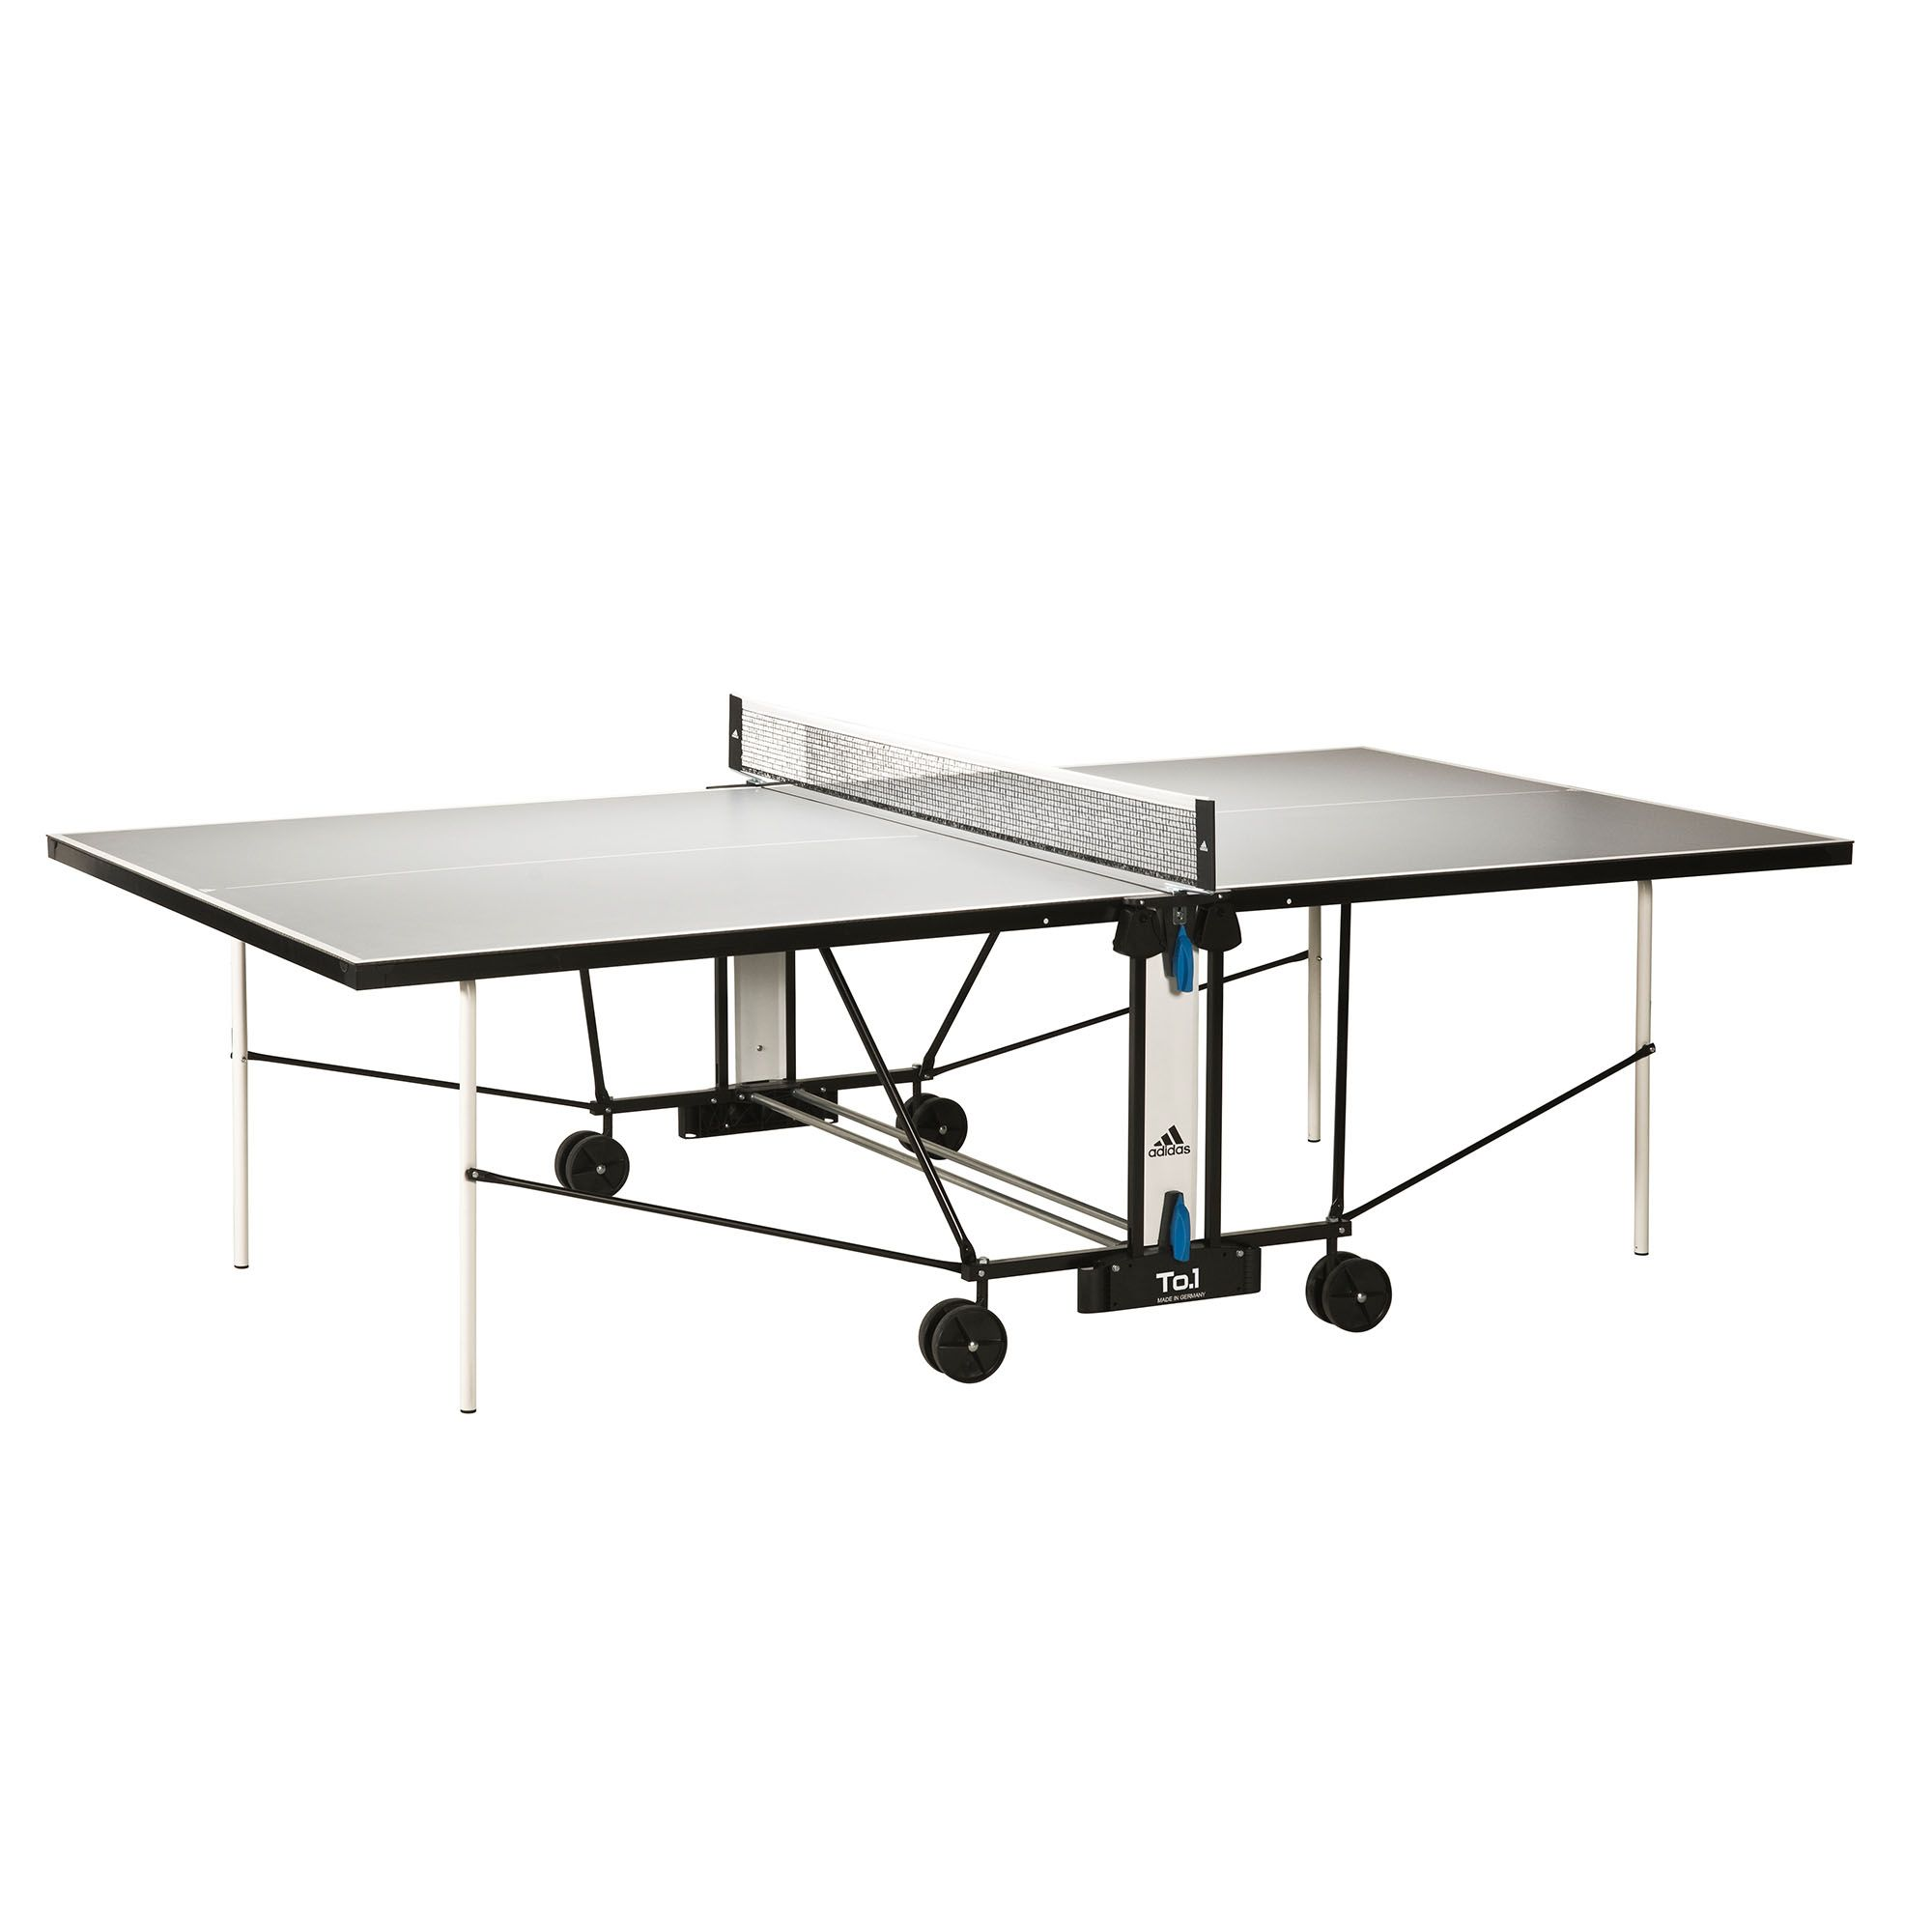 Adidas to 1 outdoor table tennis table - Weatherproof table tennis table ...